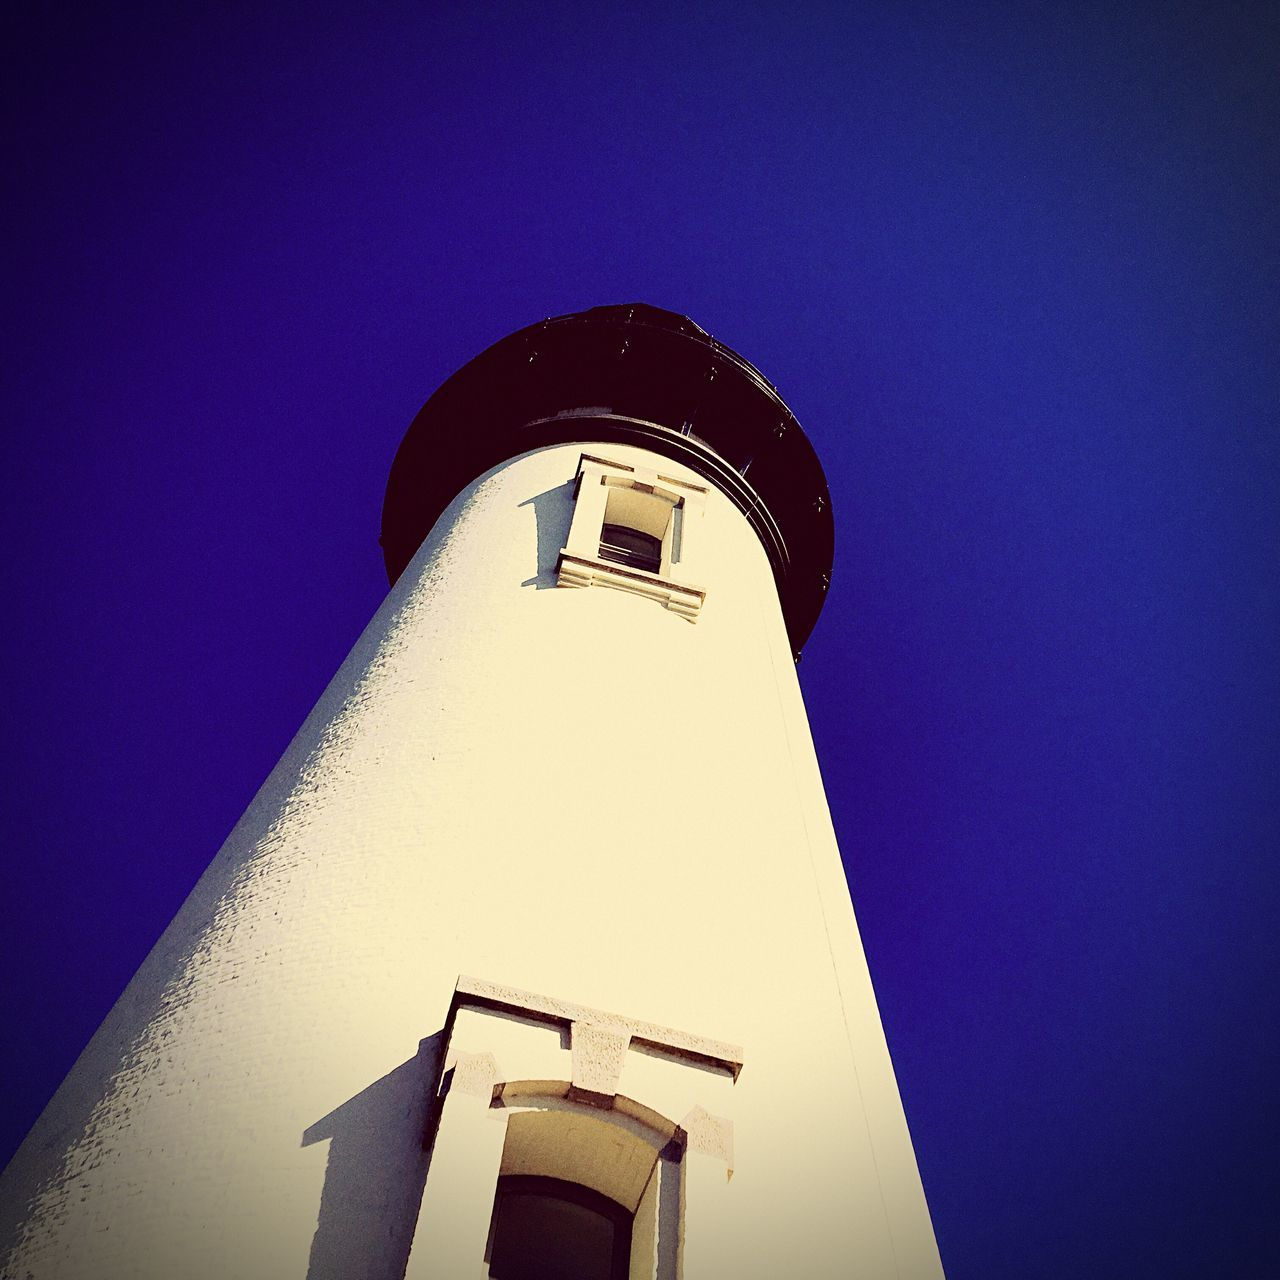 architecture, low angle view, building exterior, tower, clear sky, built structure, guidance, no people, blue, lighthouse, day, outdoors, sky, close-up